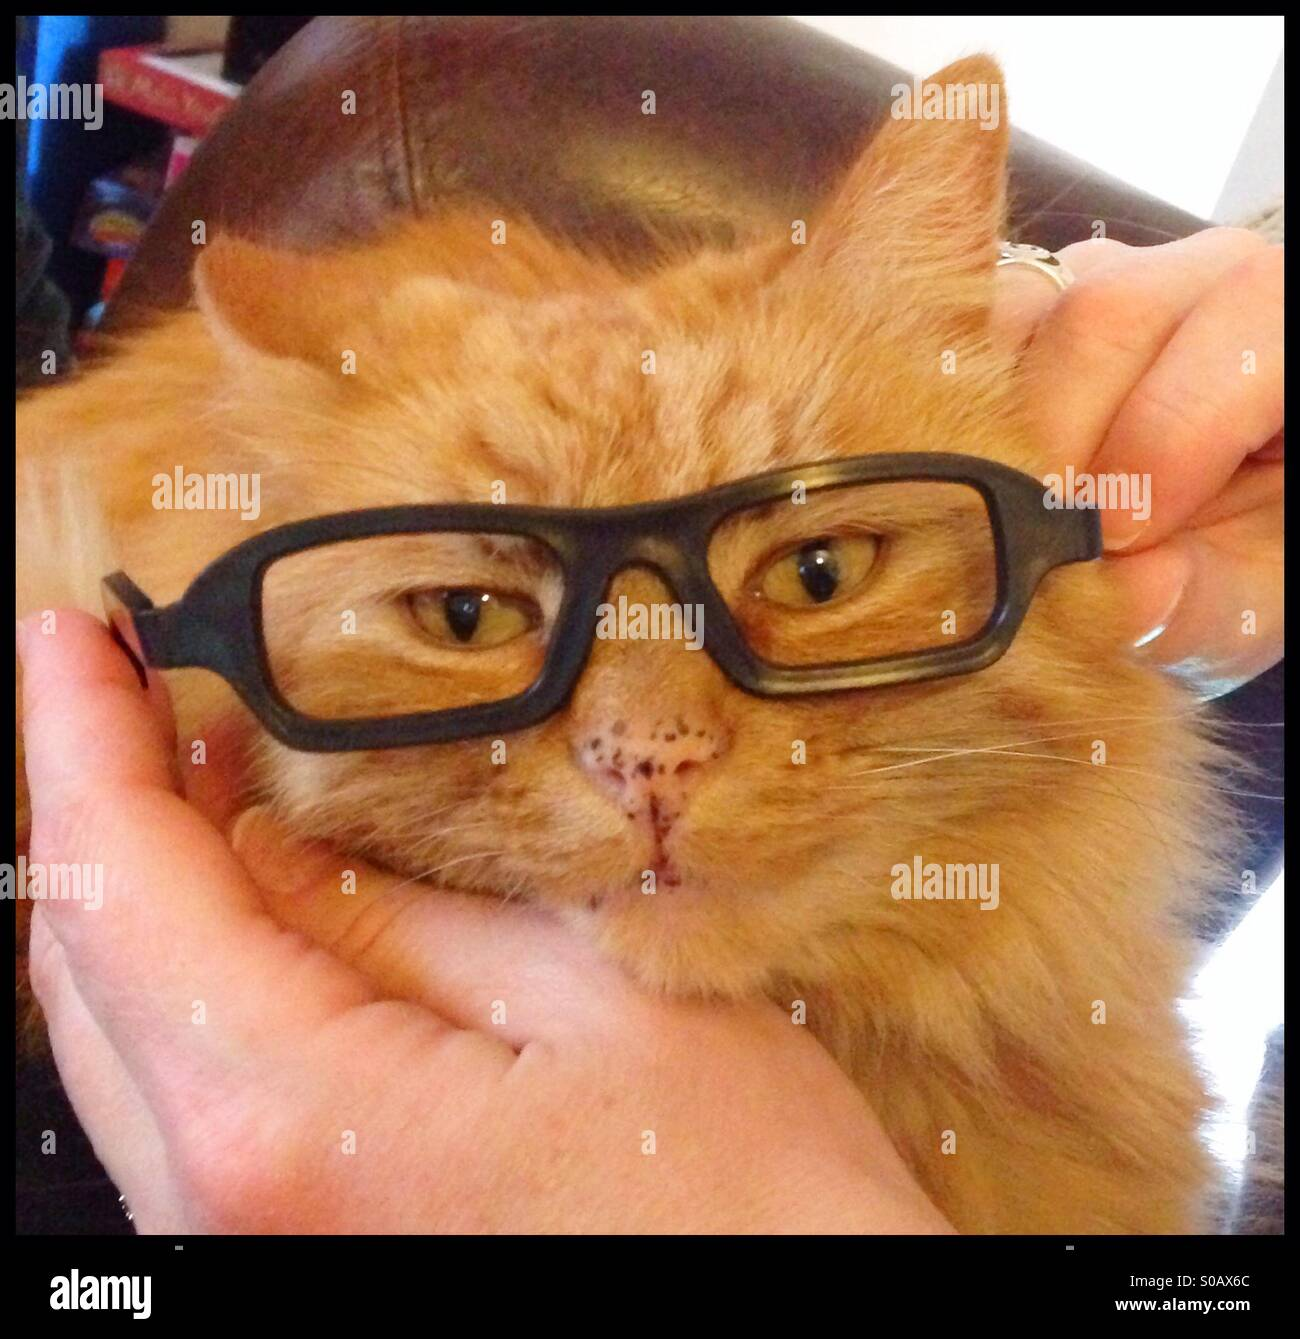 5b4899d0283 Cat Glasses Stock Photos   Cat Glasses Stock Images - Alamy